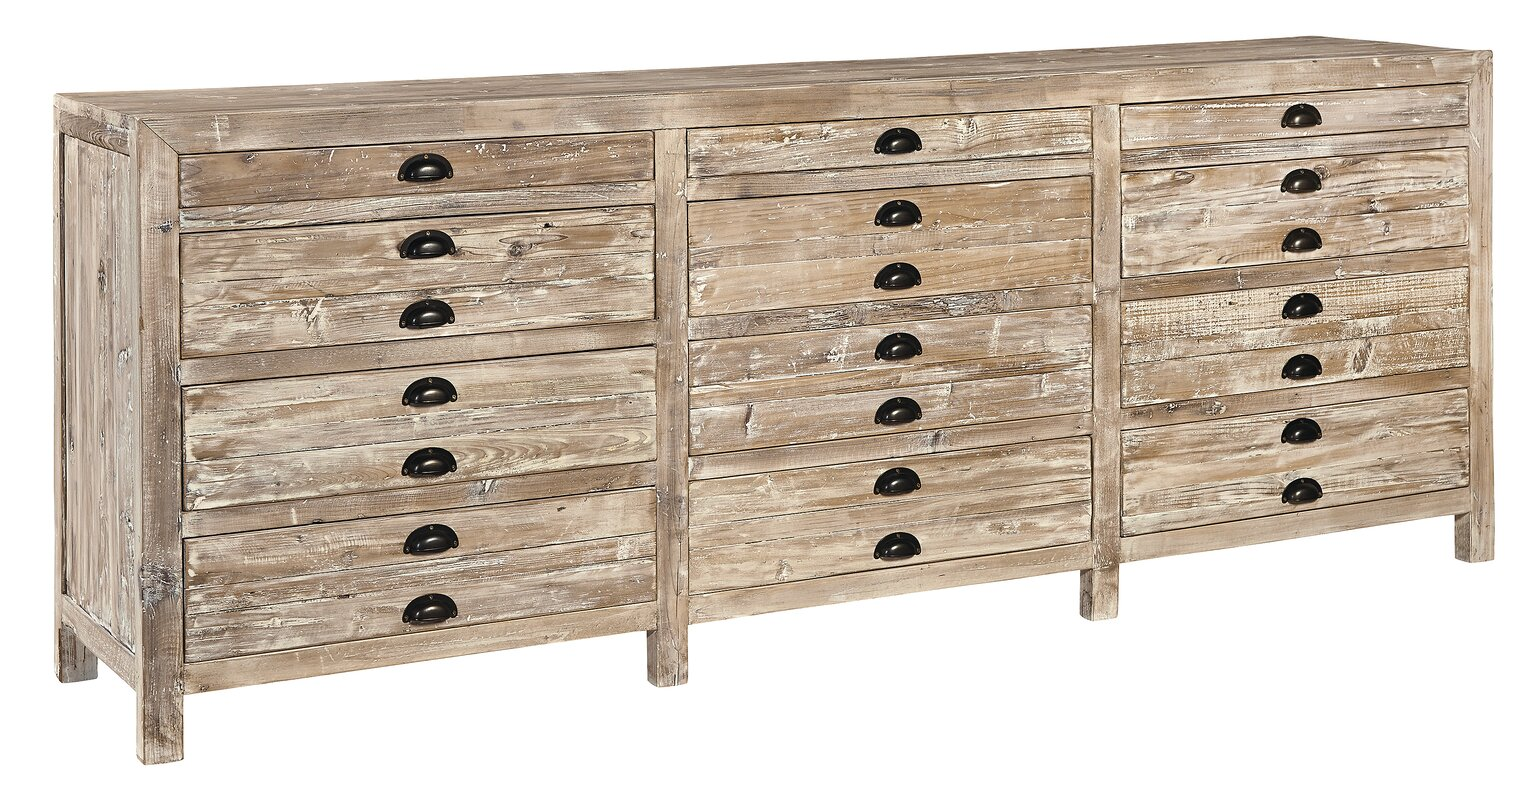 Apothecary Cabinet furniture classics ltd apothecary chest & reviews | wayfair